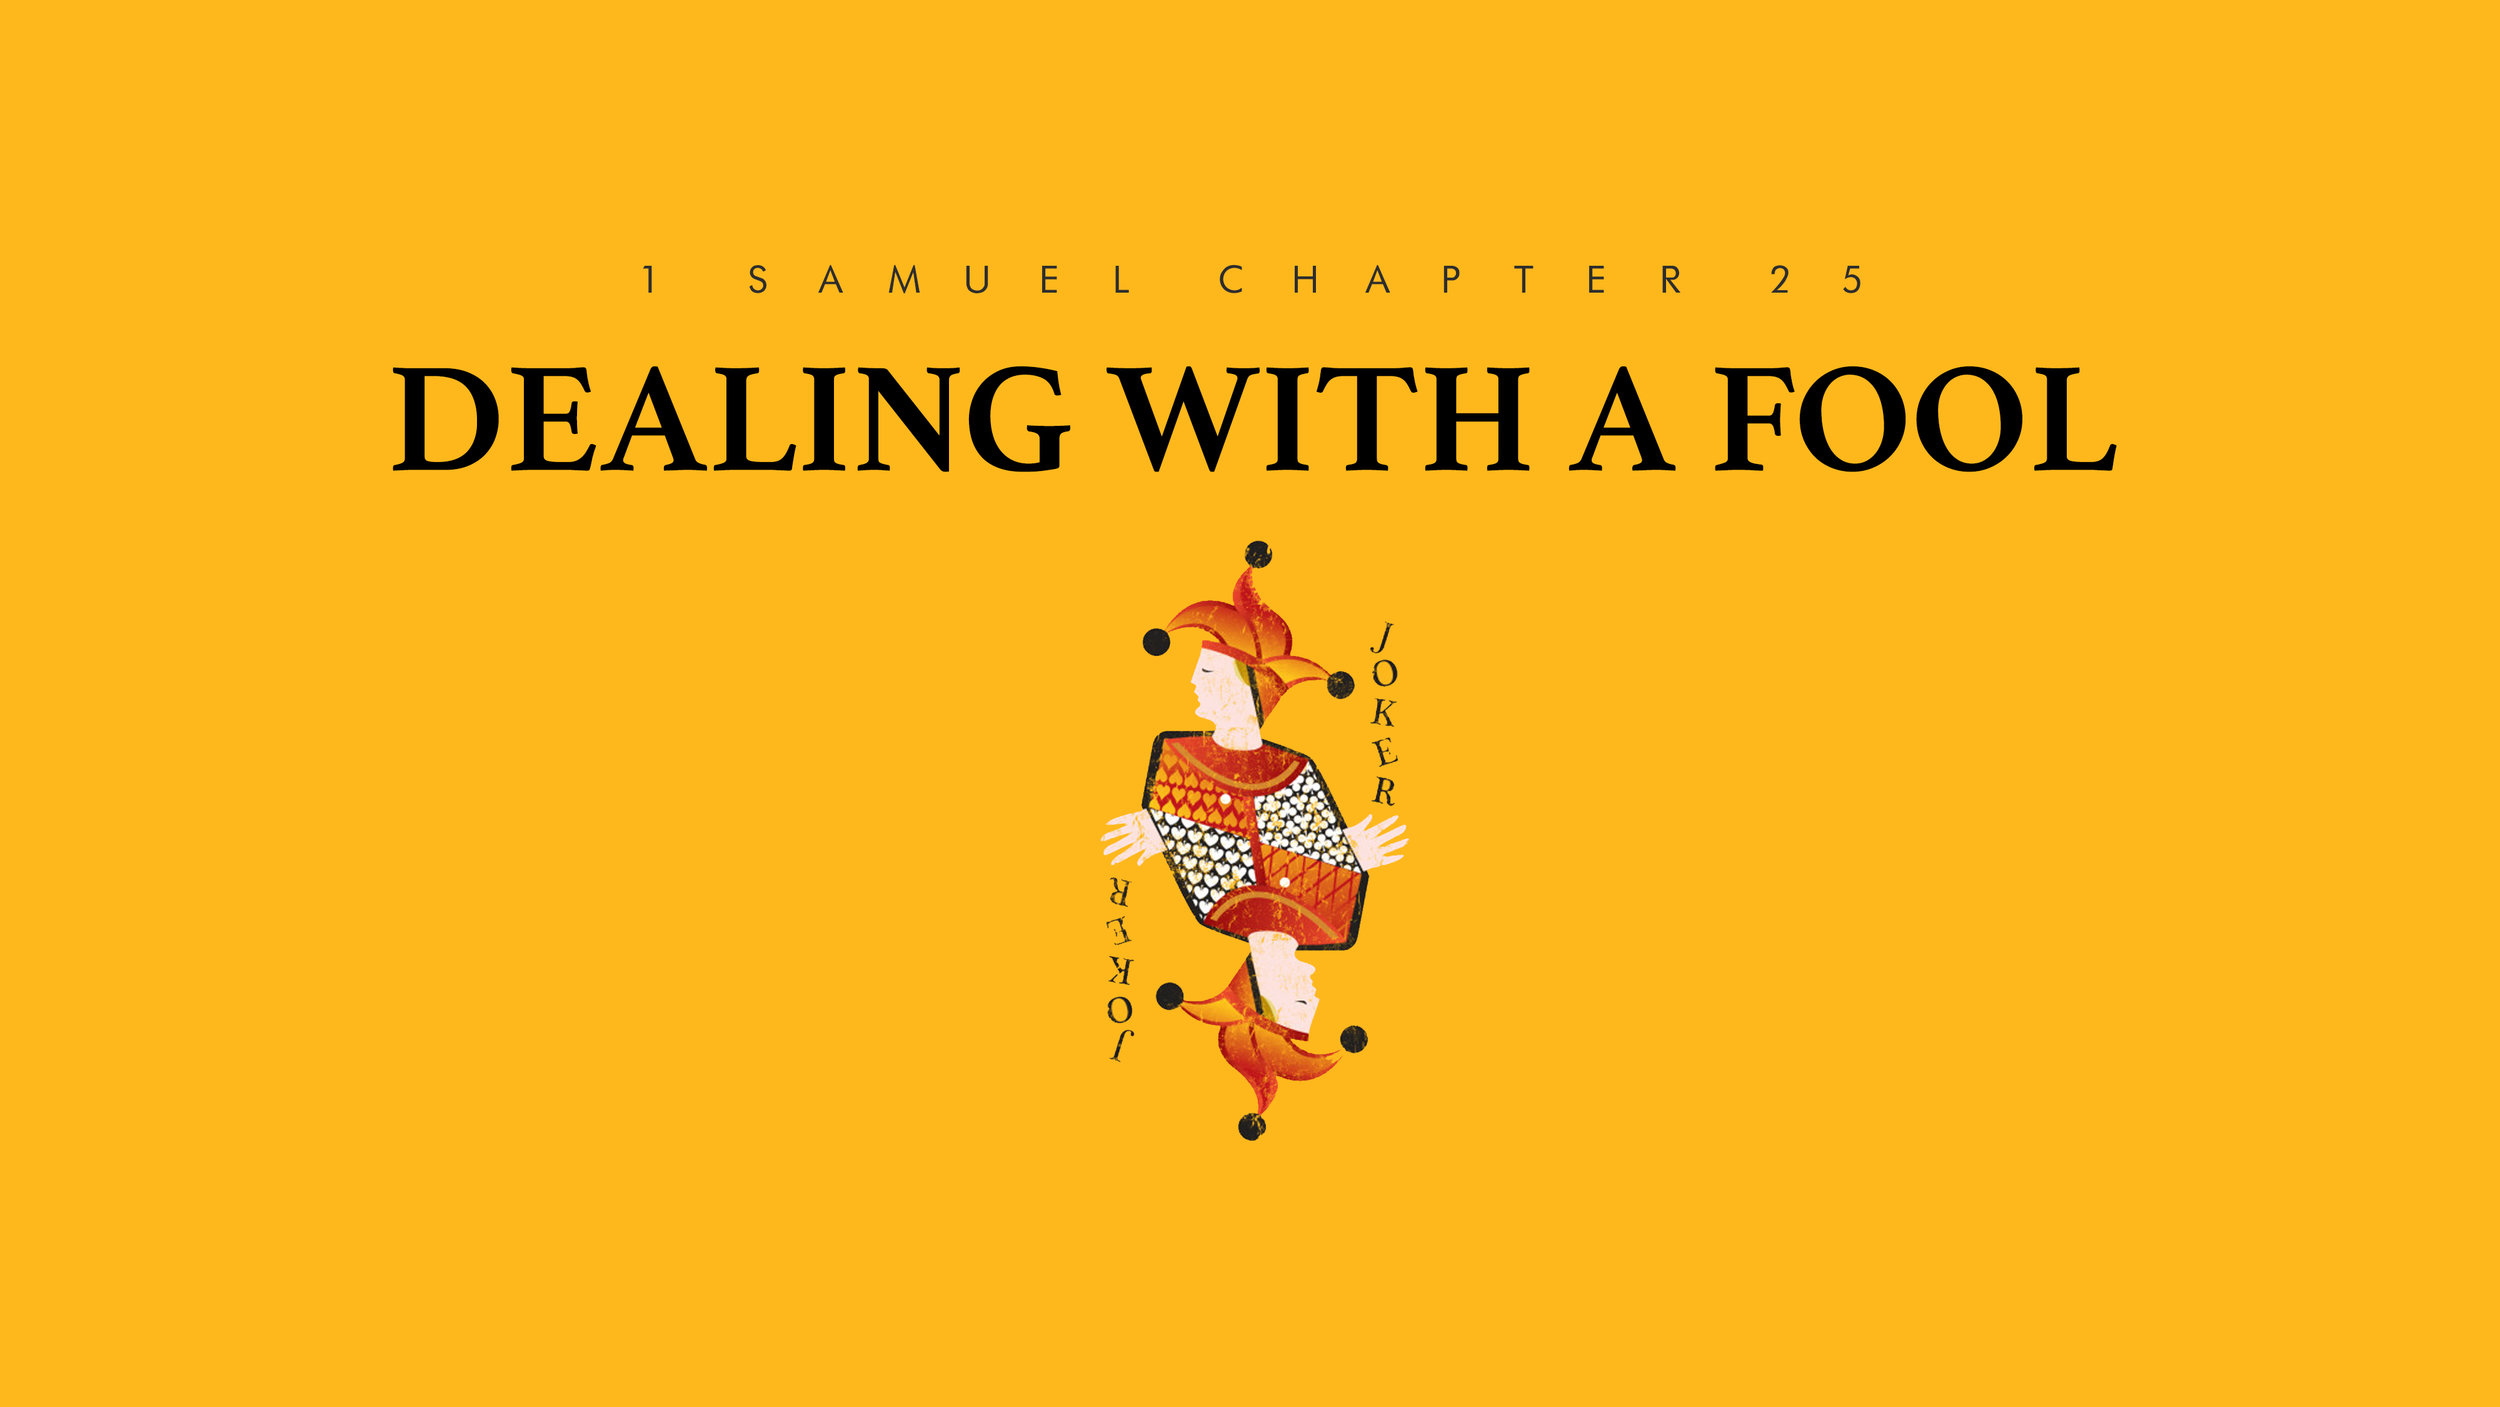 Dealing With a Fool